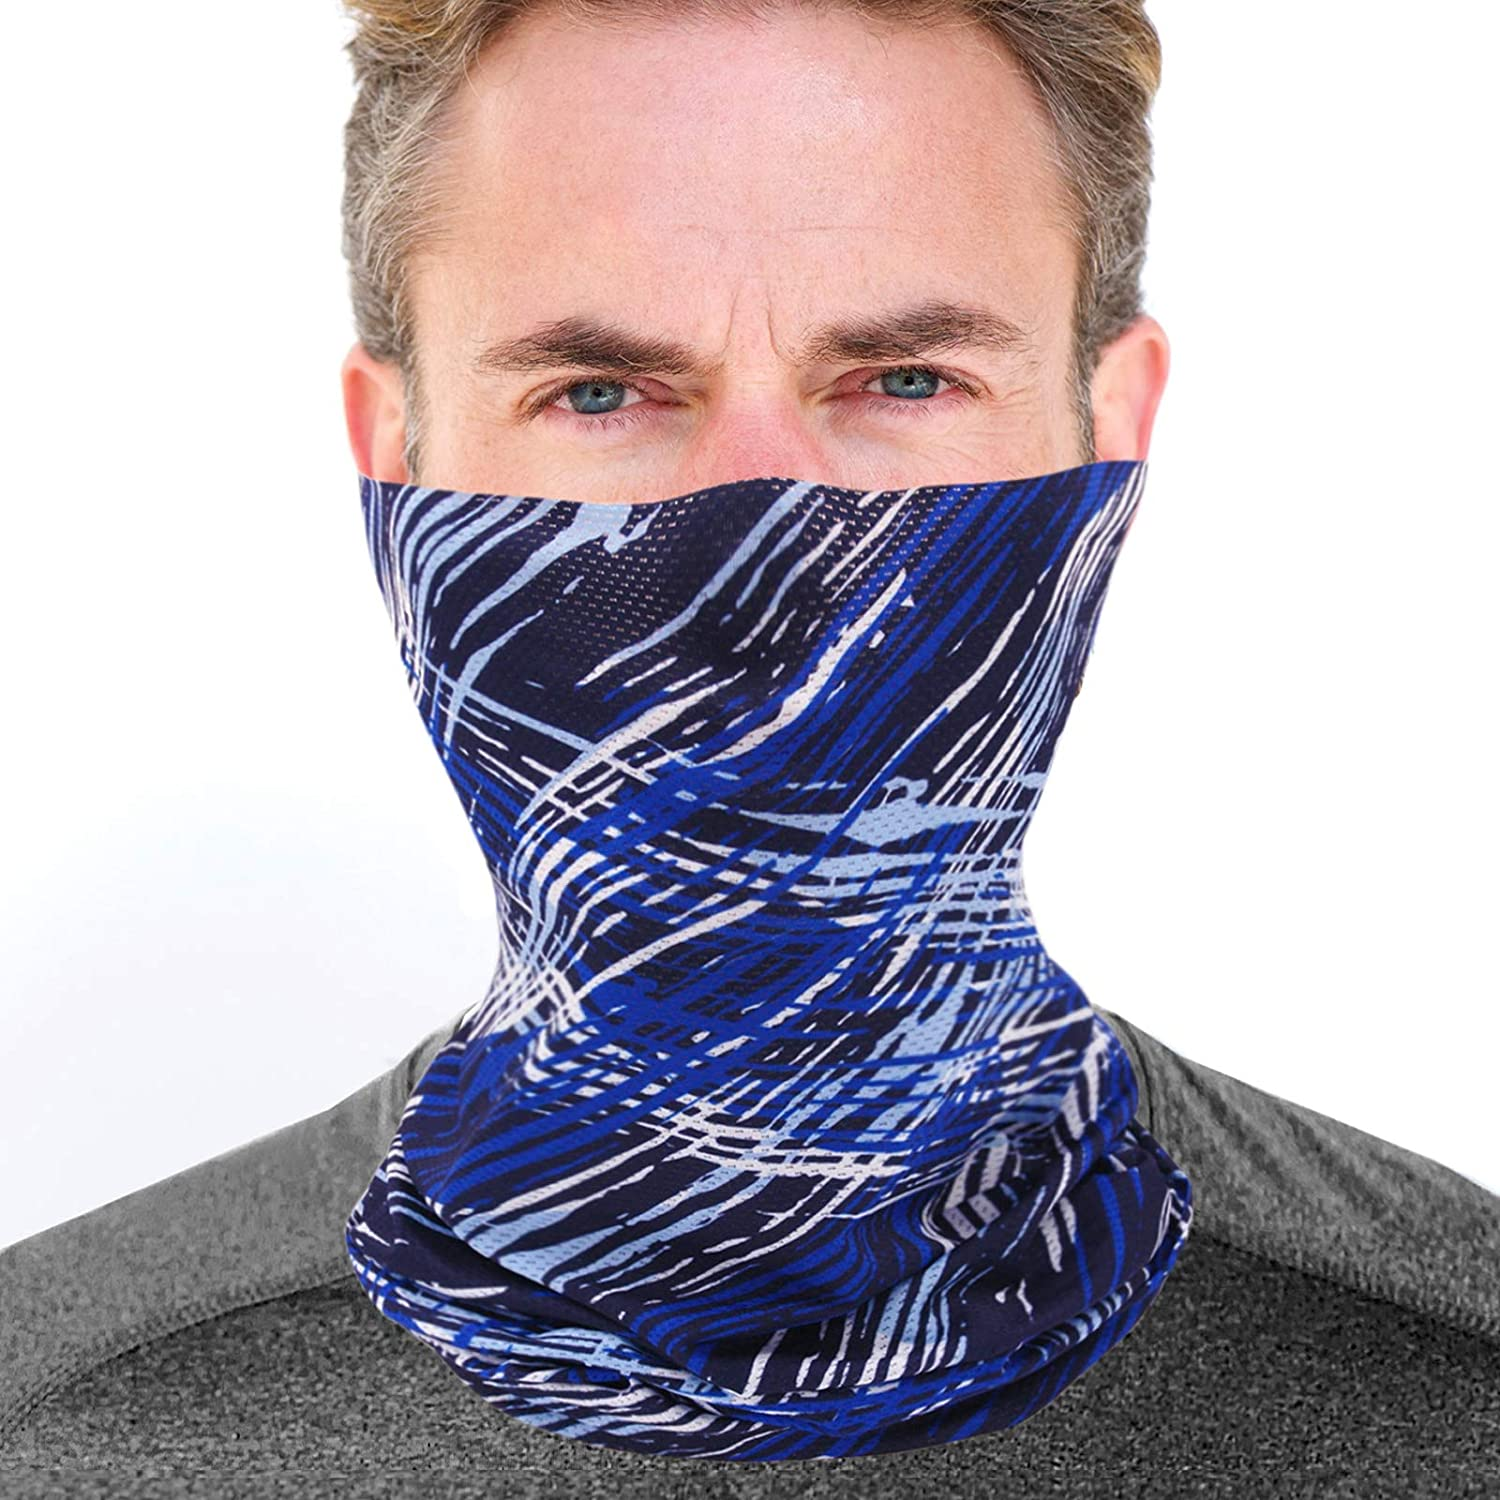 Mesh Fishing Sun Face Mask UV Protection for Men Women - Aqua Cooling Tube Neck Gaiter for Hunting Motorcycle Cycling in Summer - Dust Wind Shield Fast Dry Extreme Soft Feeling Fabric